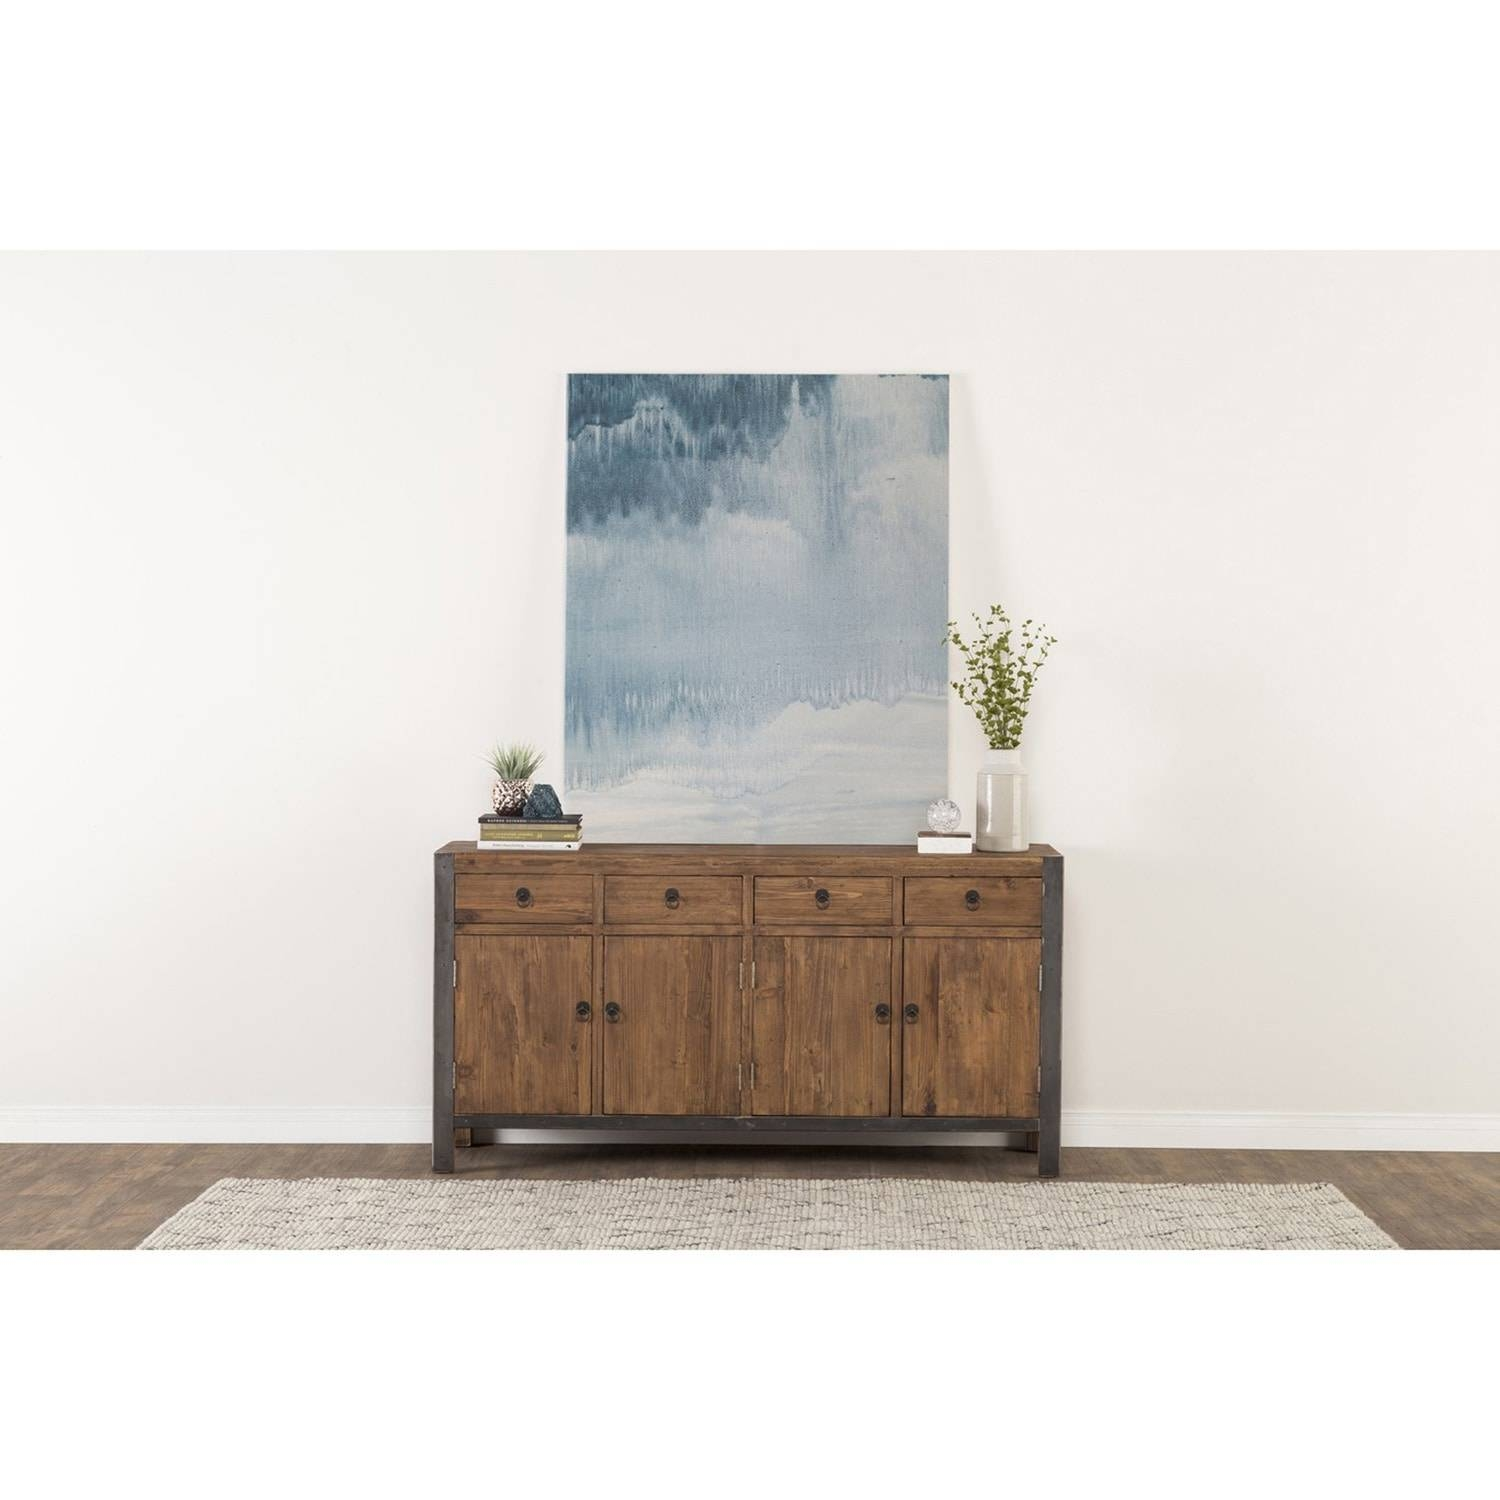 Willow Reclaimed Wood And Iron 70-Inch Buffetkosas Home - Free regarding 70 Inch Sideboards (Image 15 of 15)